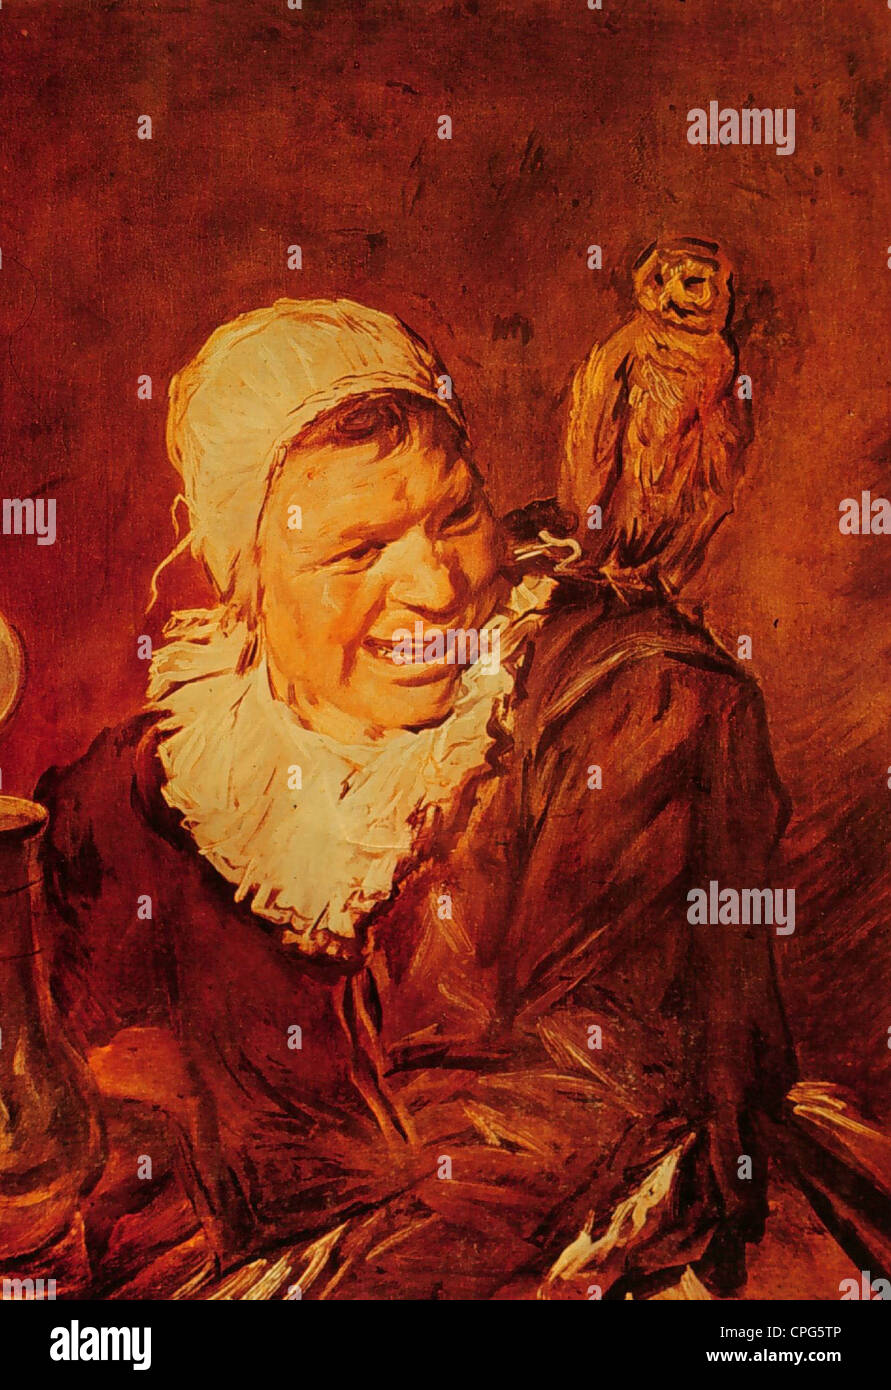 witches, weather witch, painting by Frans Hals, 17th century, historic, historical, owl on shoulder, bird, people, - Stock Image